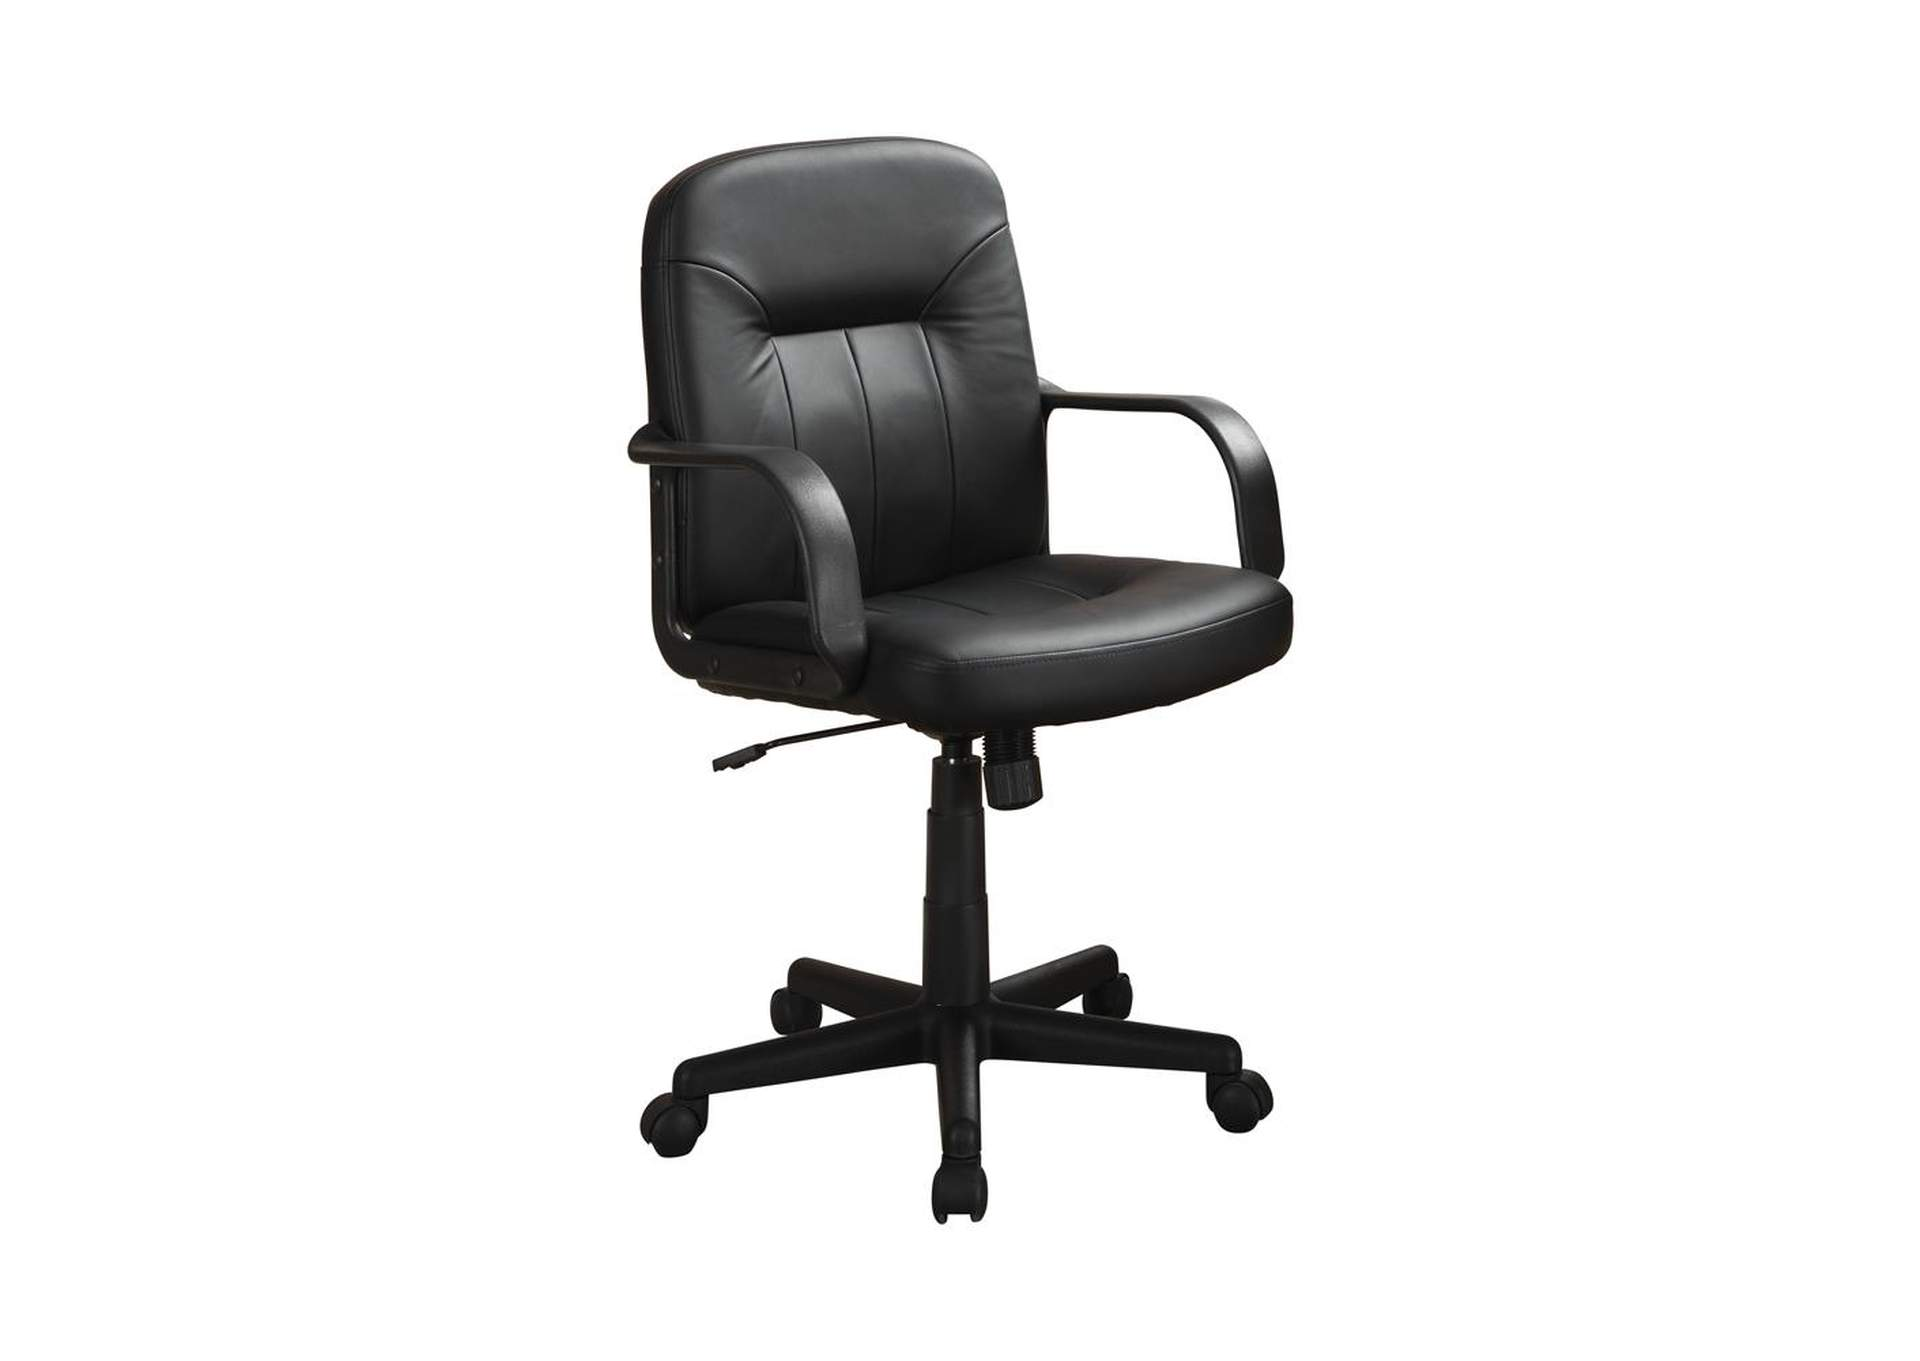 Black Contemporary Black Office Chair,Coaster Furniture